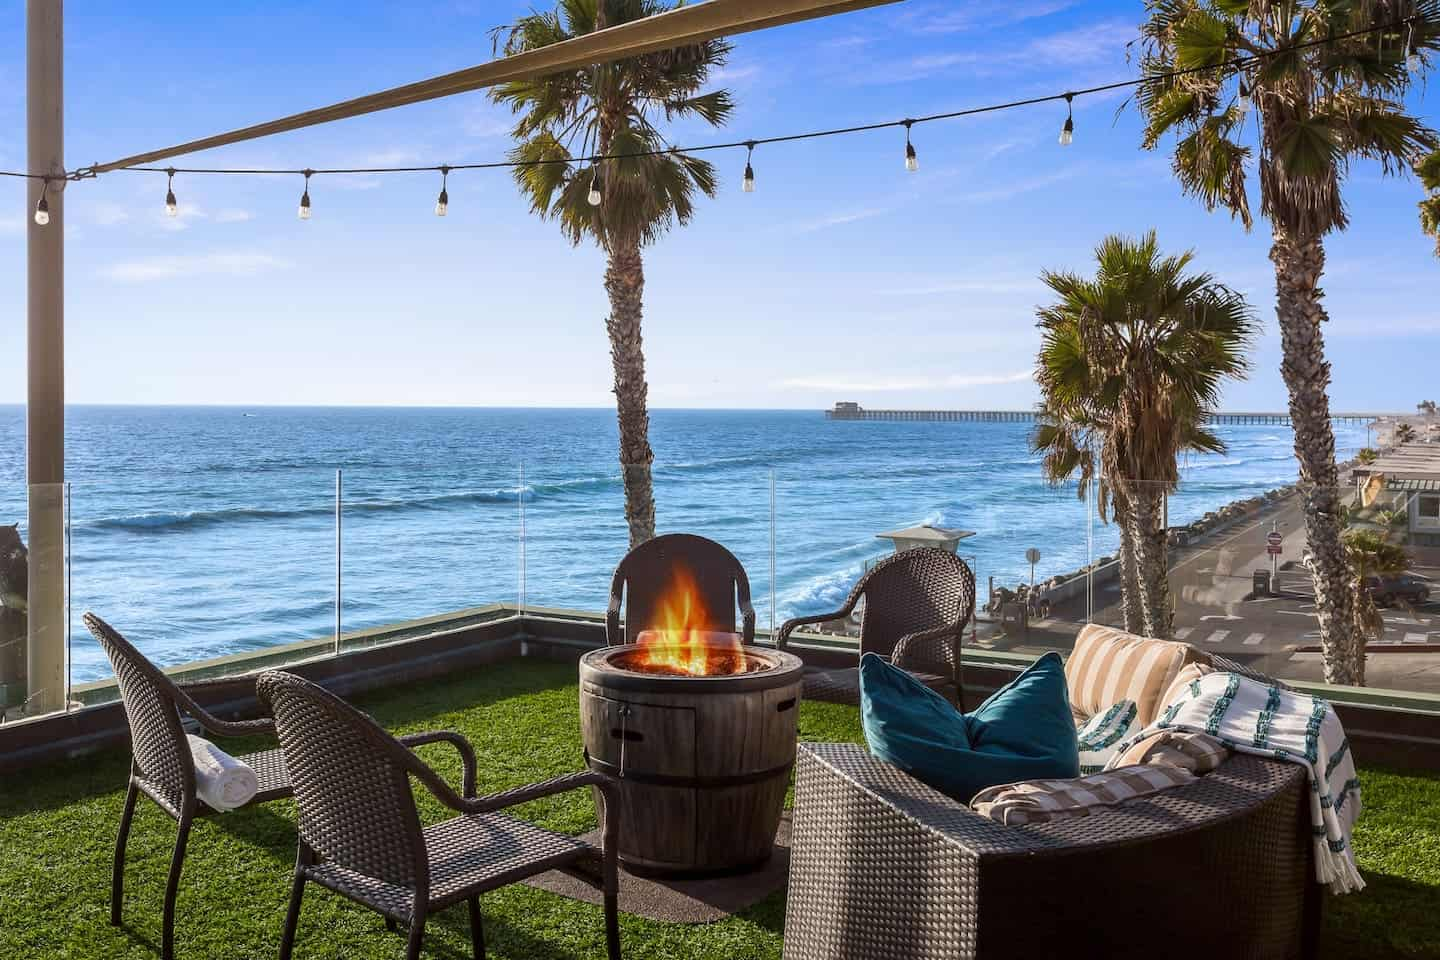 Image of Airbnb rental in Oceanside California